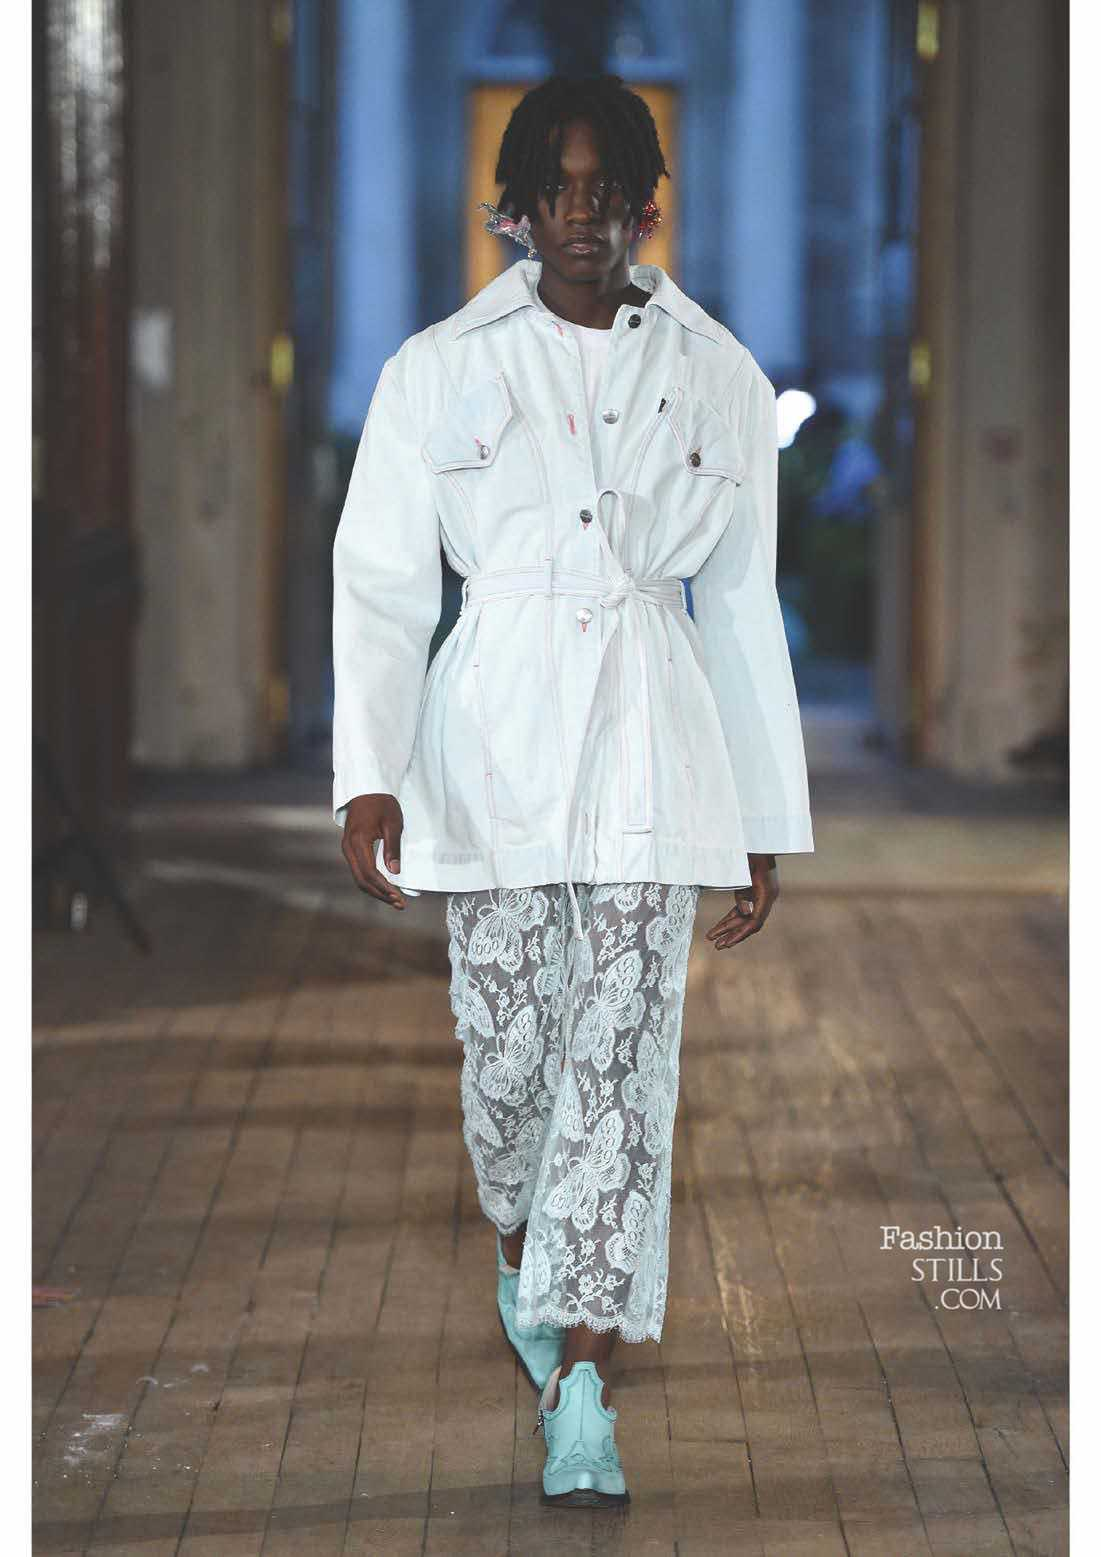 Neith Nyer_1513681575_00_look-book-_-press-release-ss18-neith-nyer-018.jpg